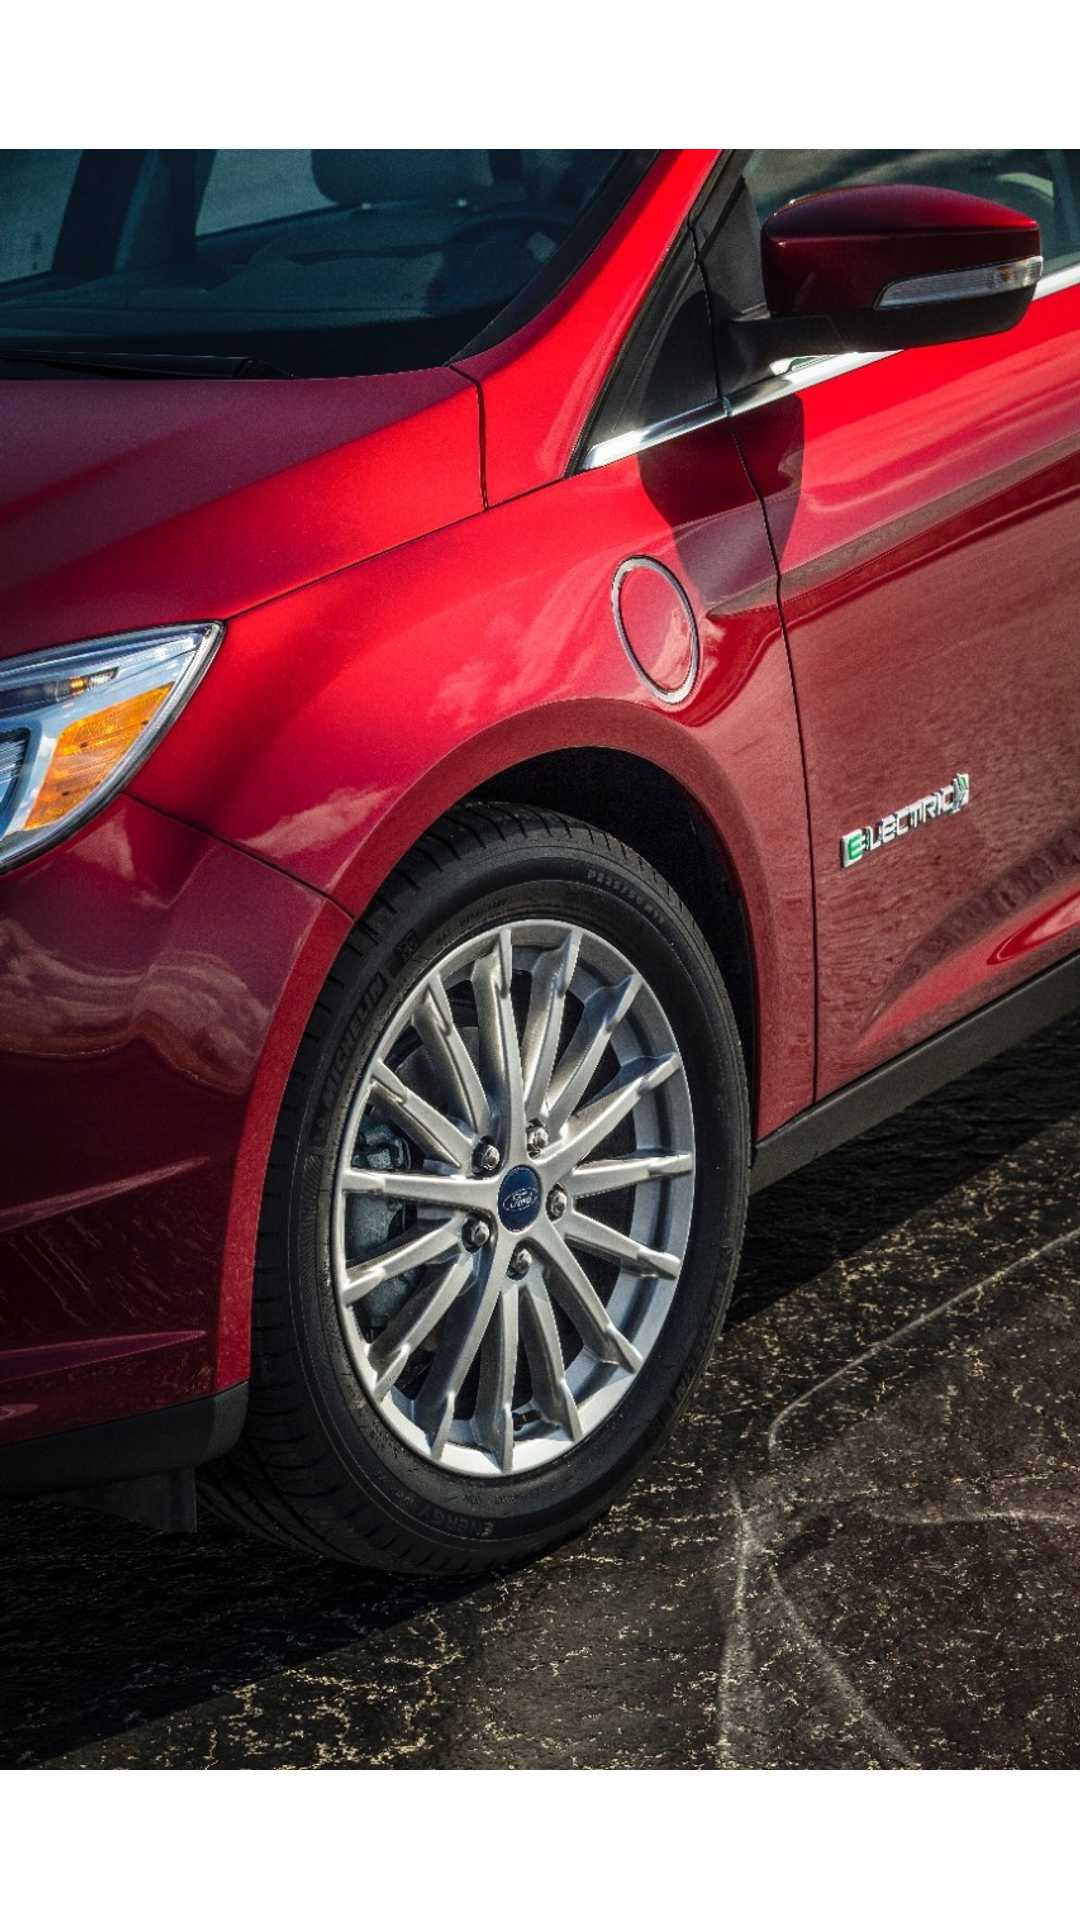 Red 2015 Ford Focus : focus, Focus, Electric, Official, Reveal